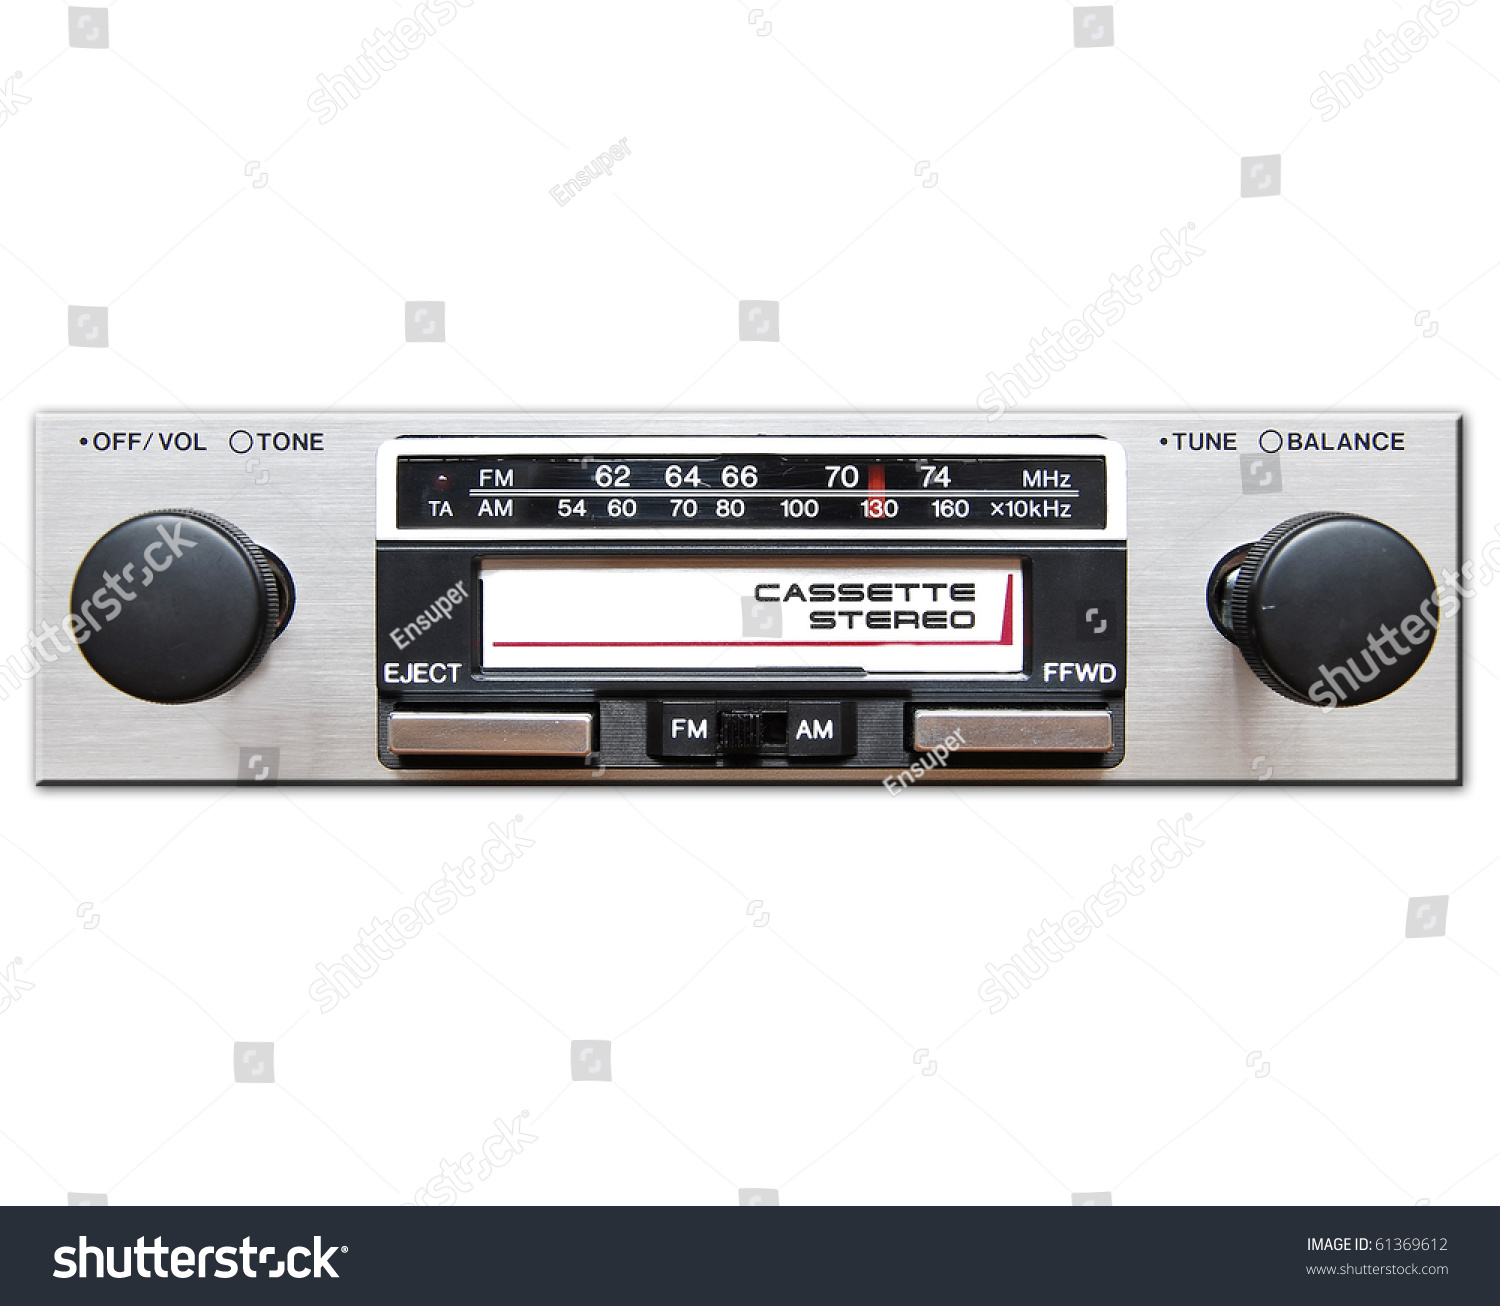 Car Audio Clipart Realistic Radio Wiring Diagram Photo 46